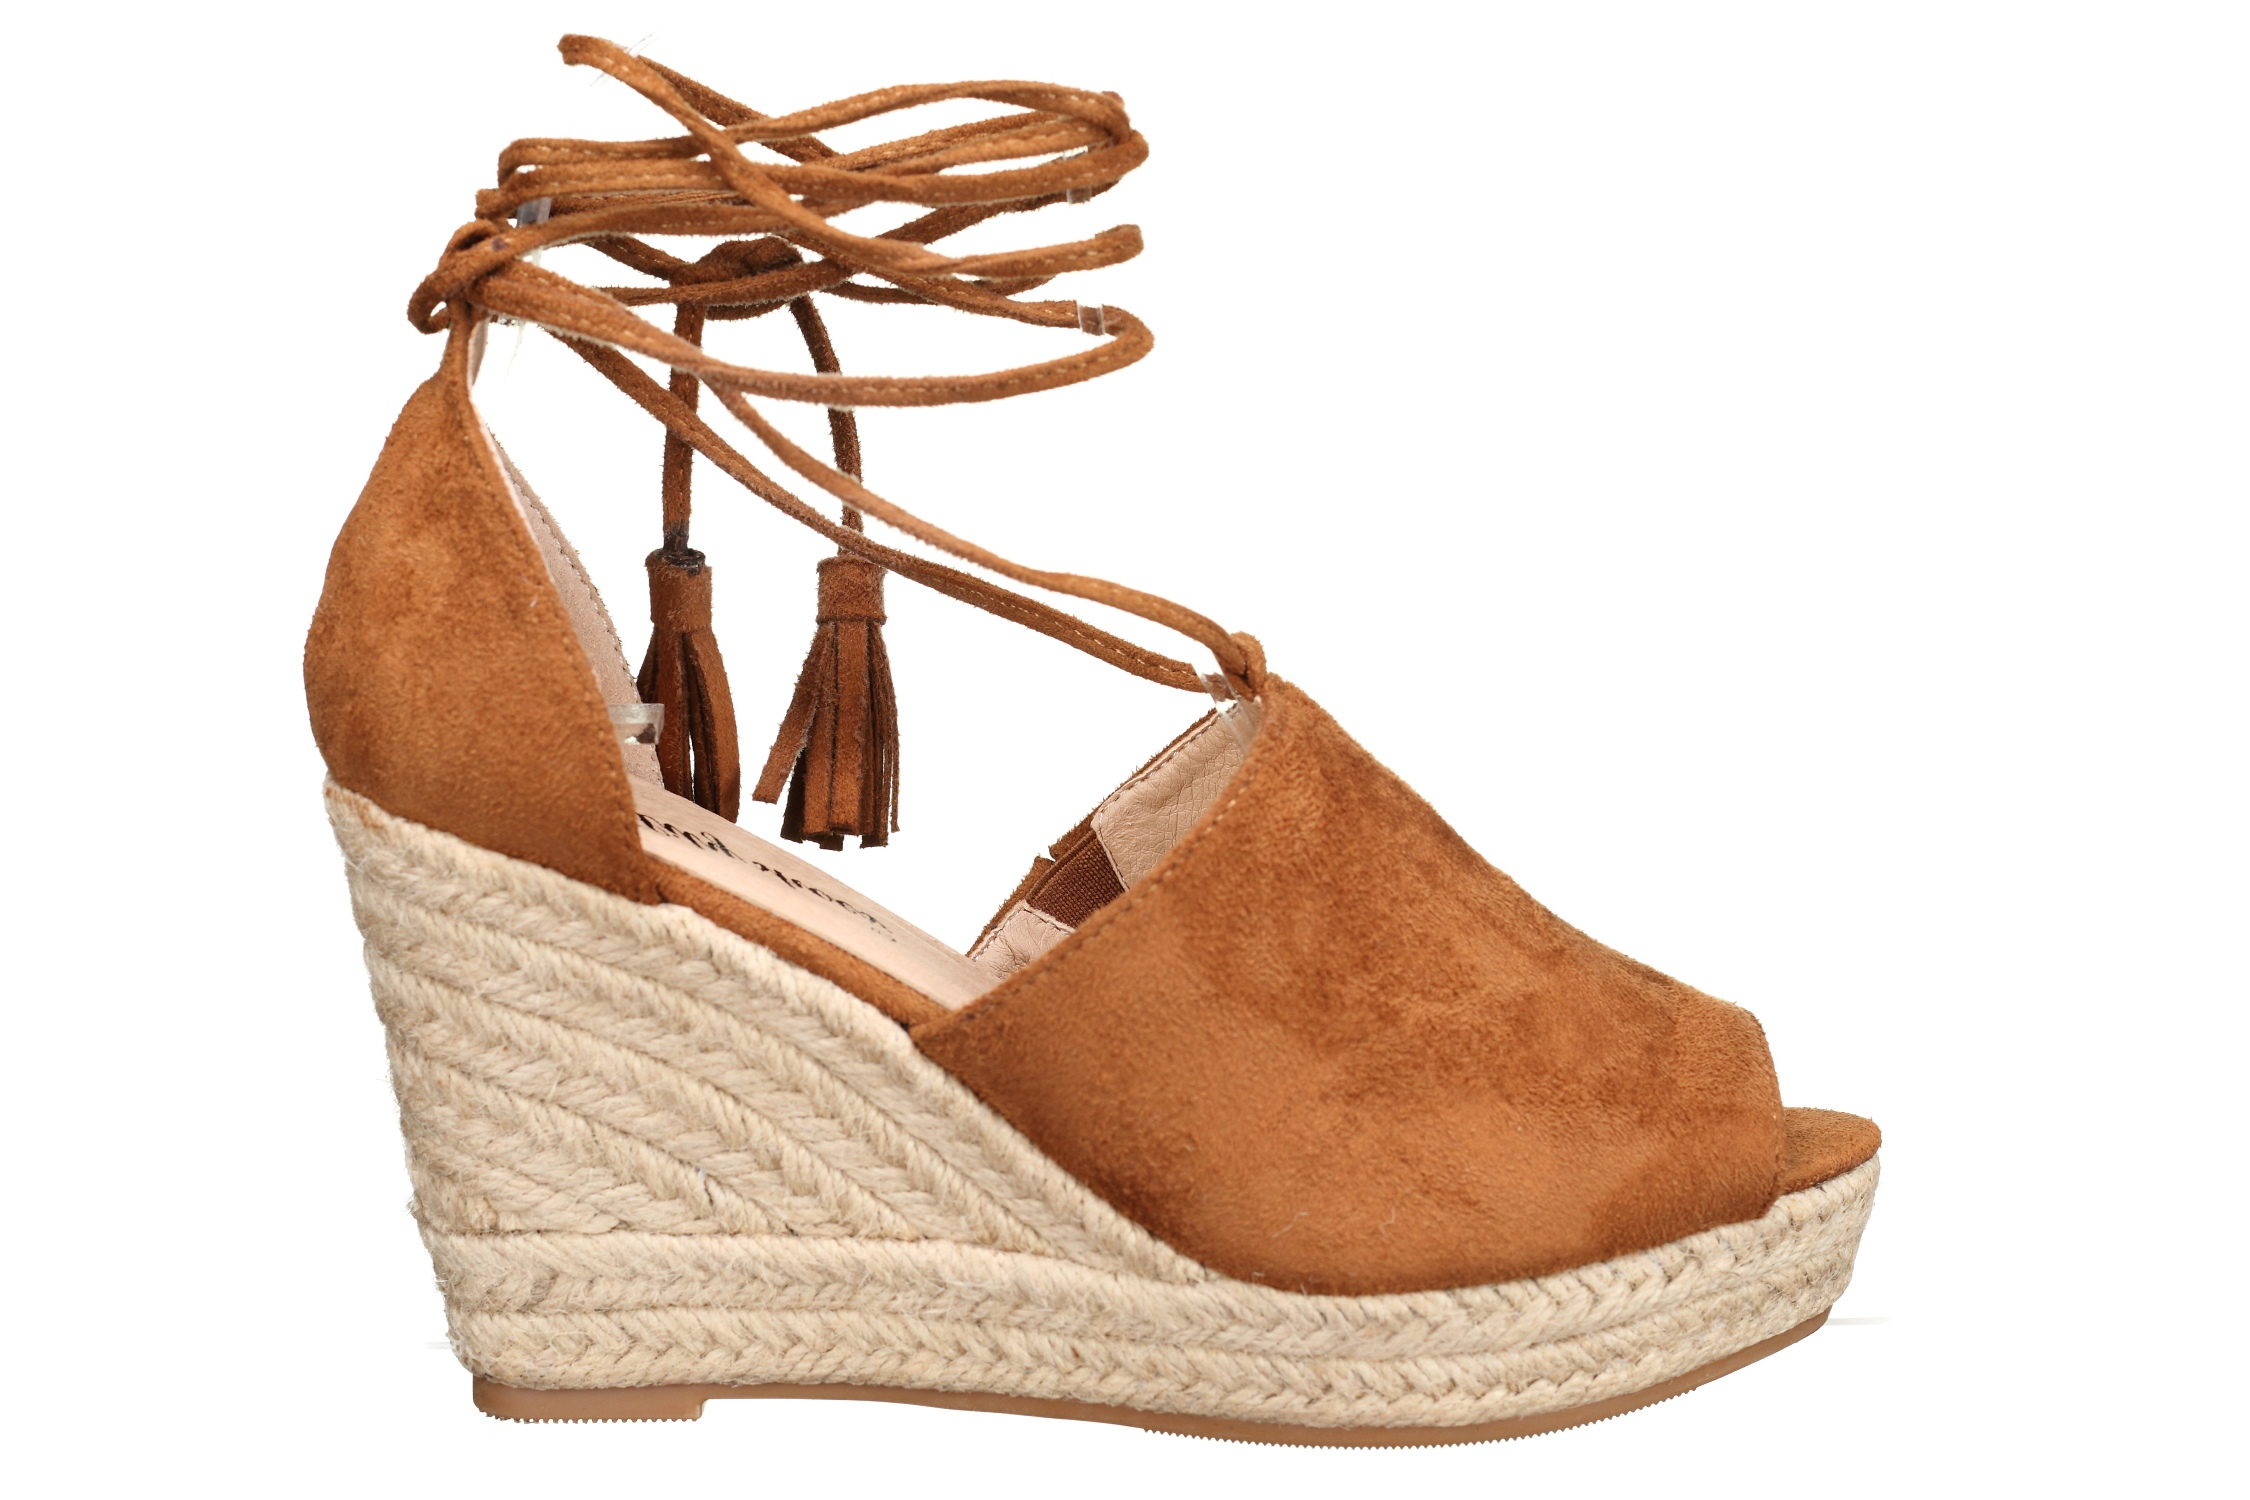 http://www.leadermode.com/171291/lily-shoes-202-camel.jpg